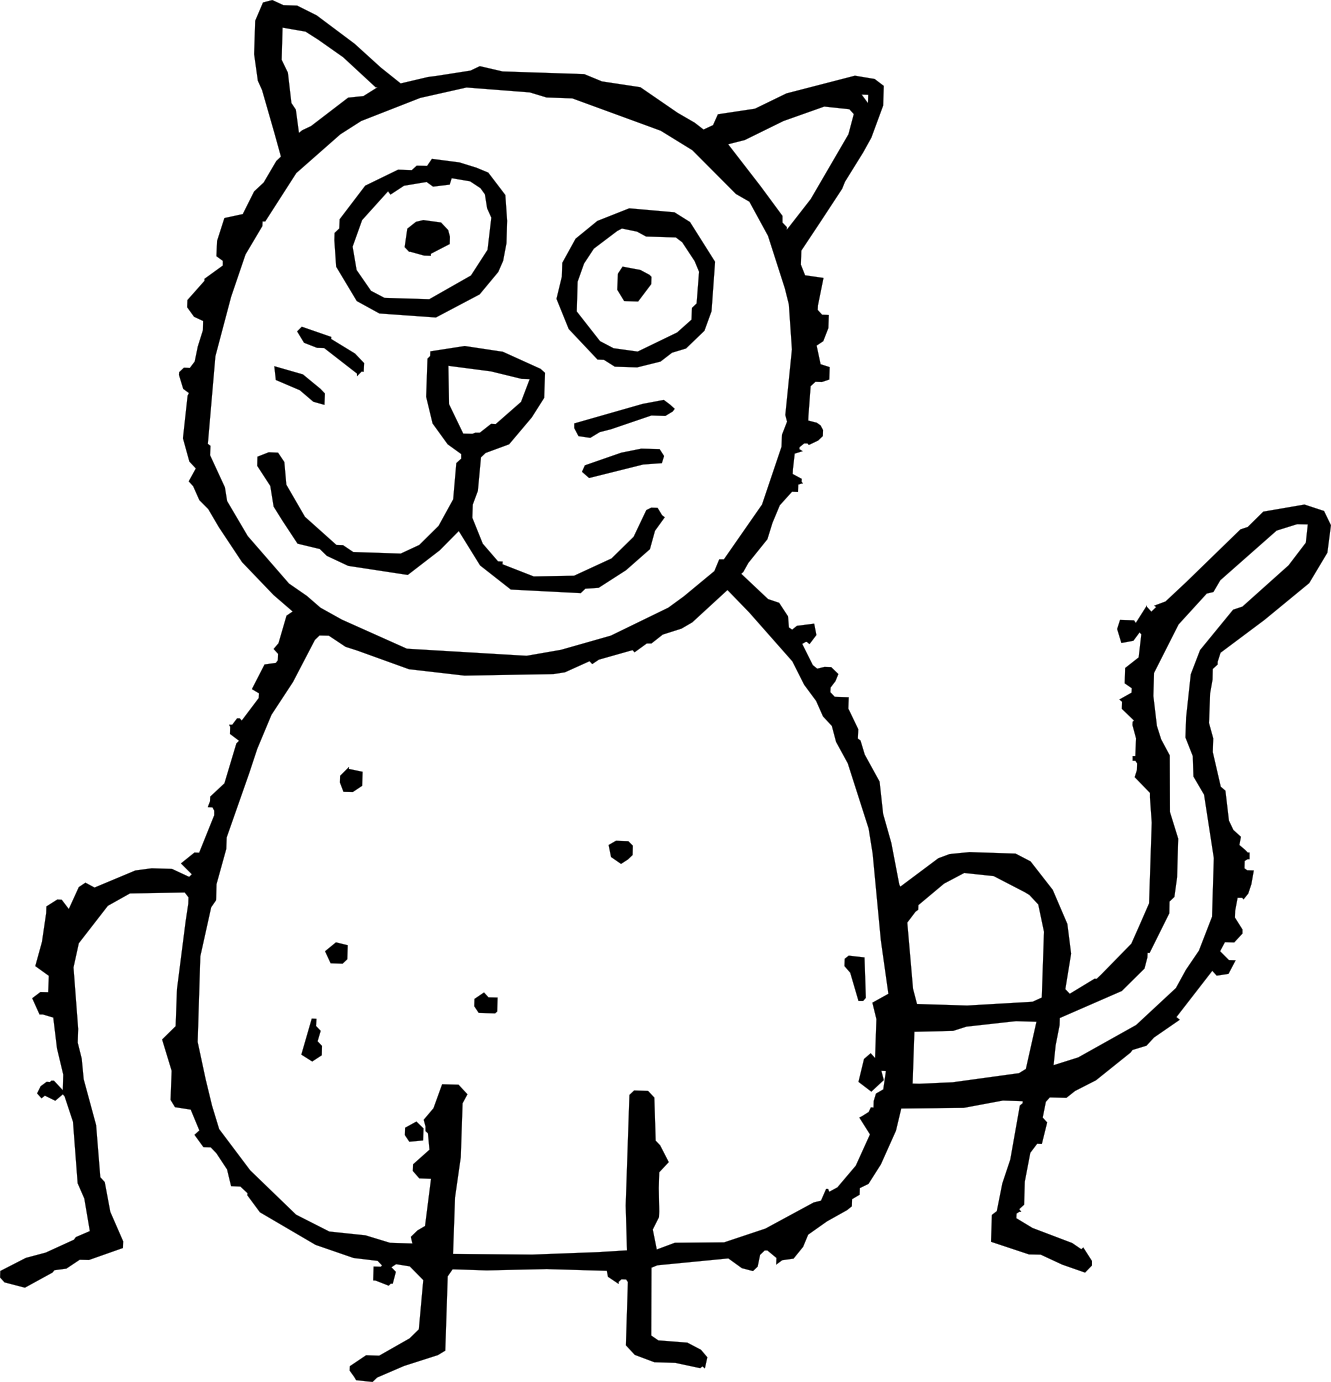 Textbook clipart black and white. Free cartoon cat download